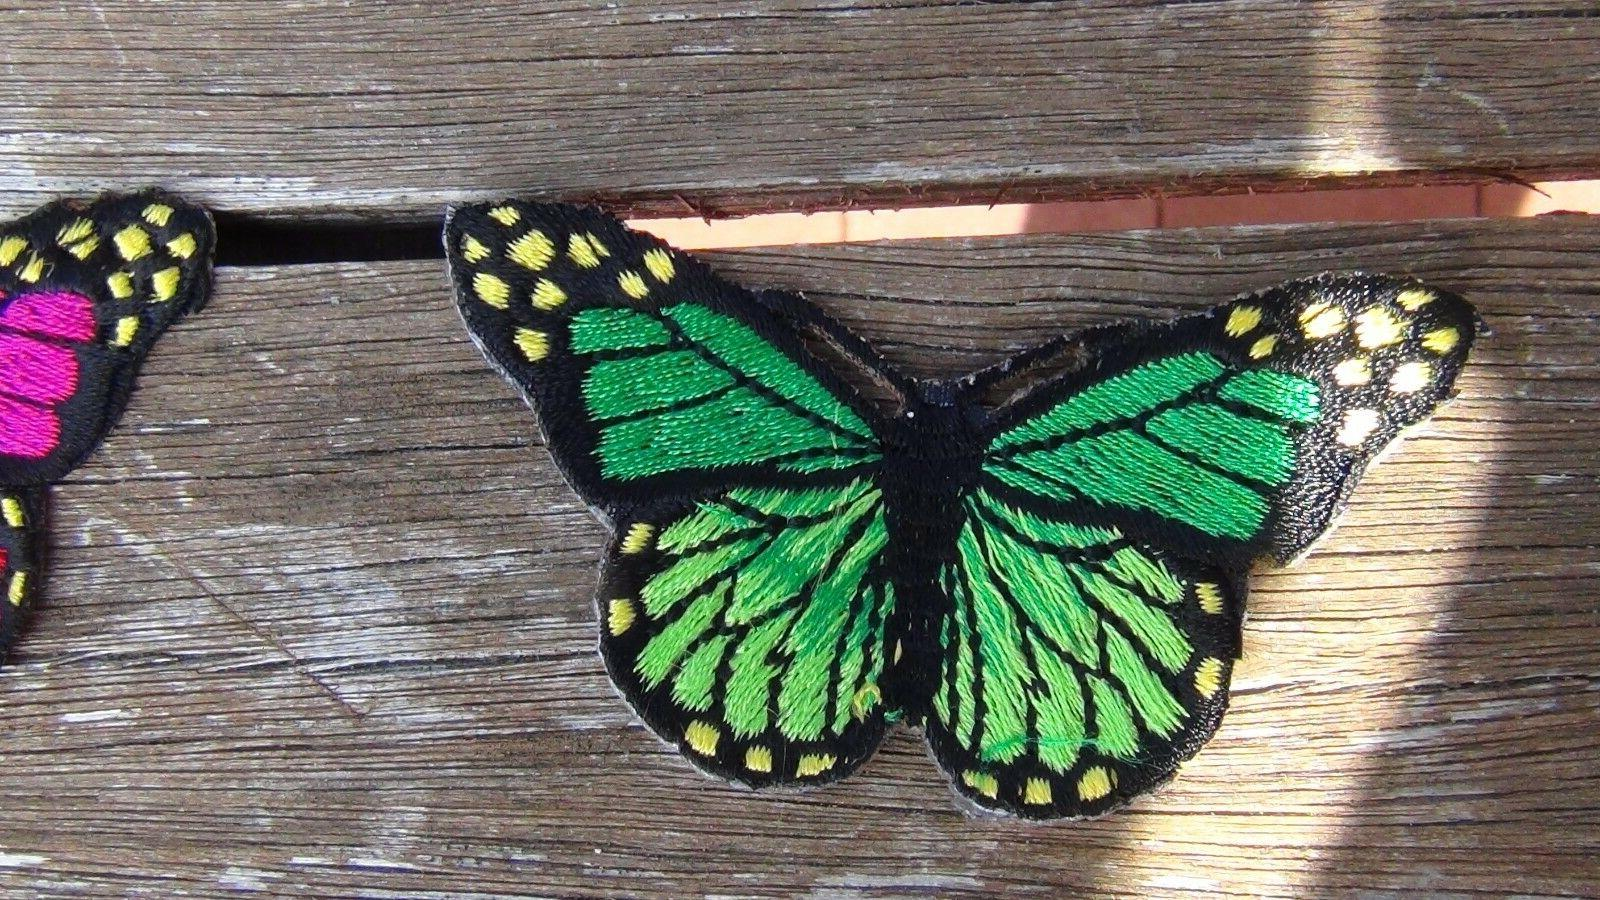 butterfly different color Iron x 3/4 inch